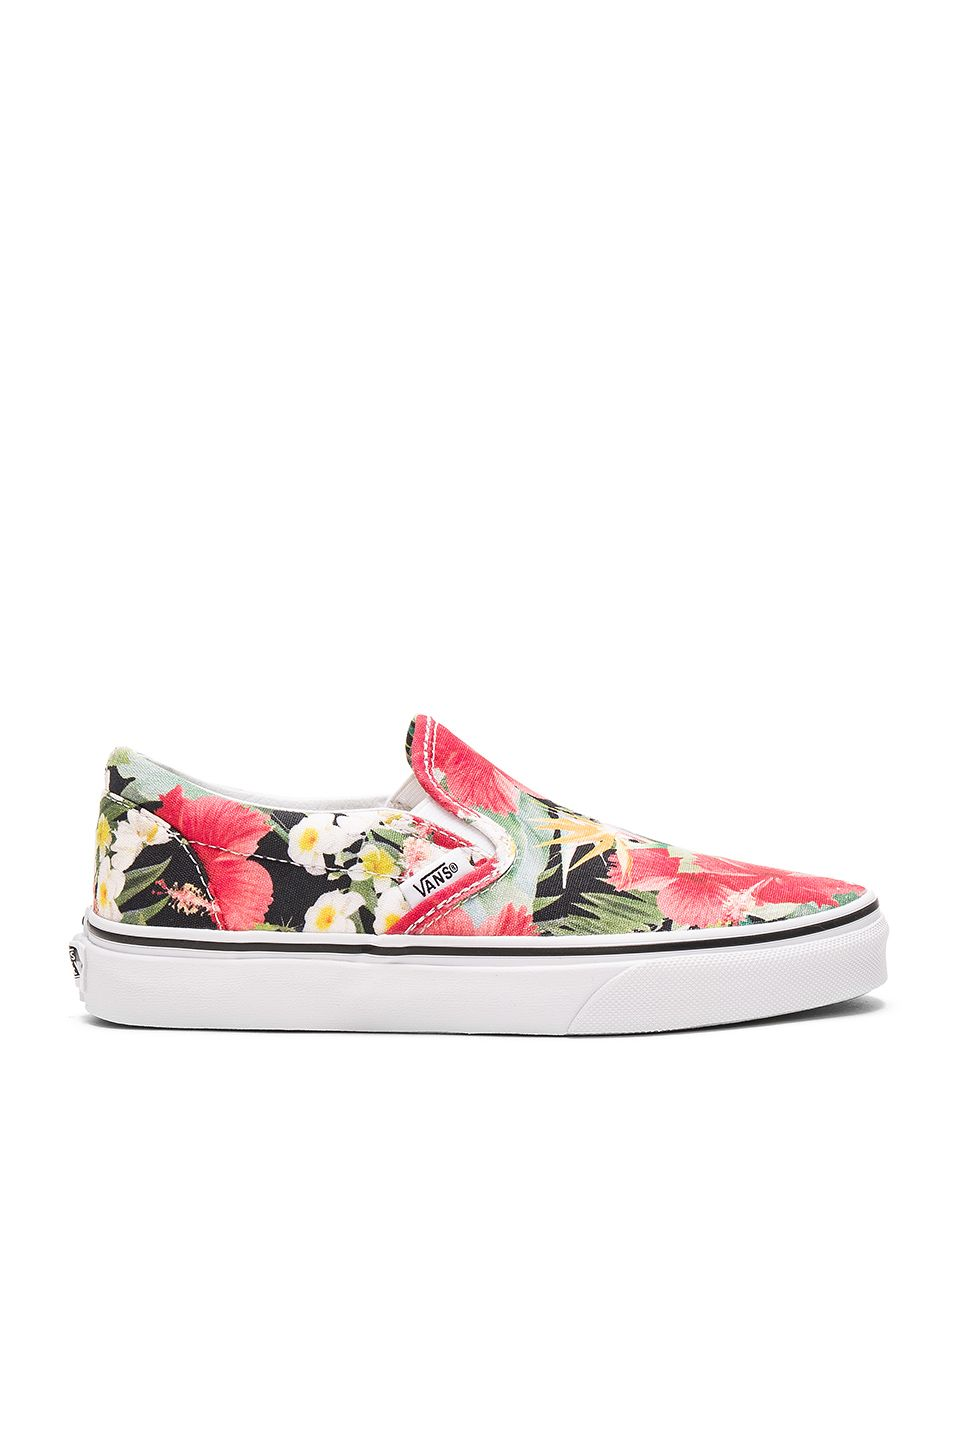 38c27ae045 Vans Digi Aloha Classic Slip On in Black   True White